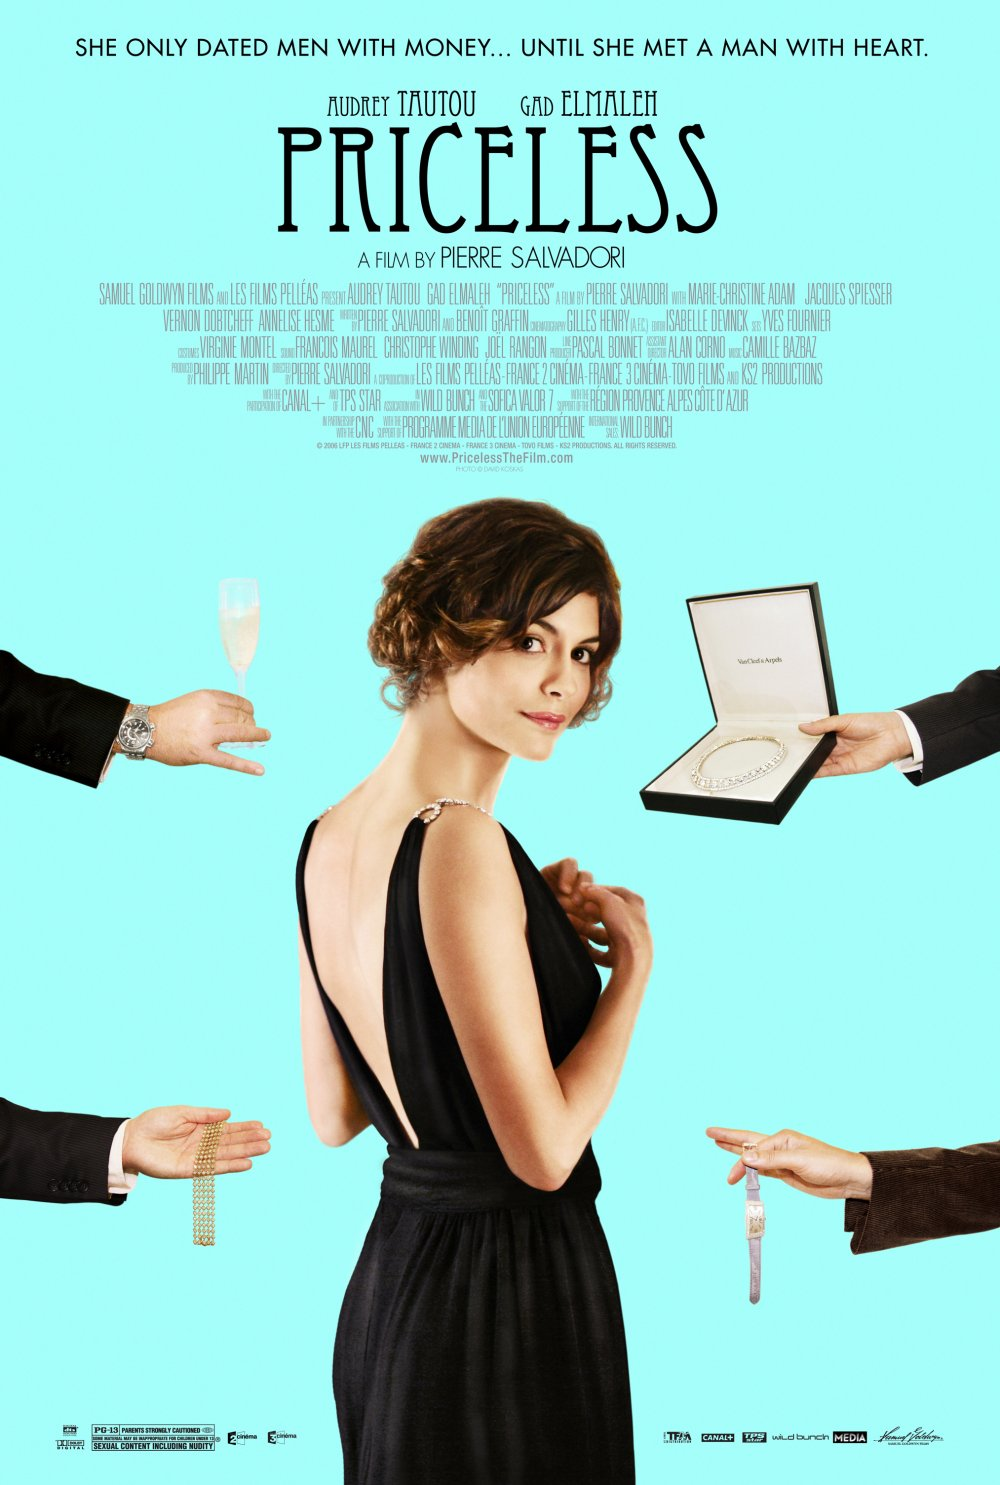 movie-poster-for-the-film-PRICELESS-with-Audrey-Tautou-.jpg